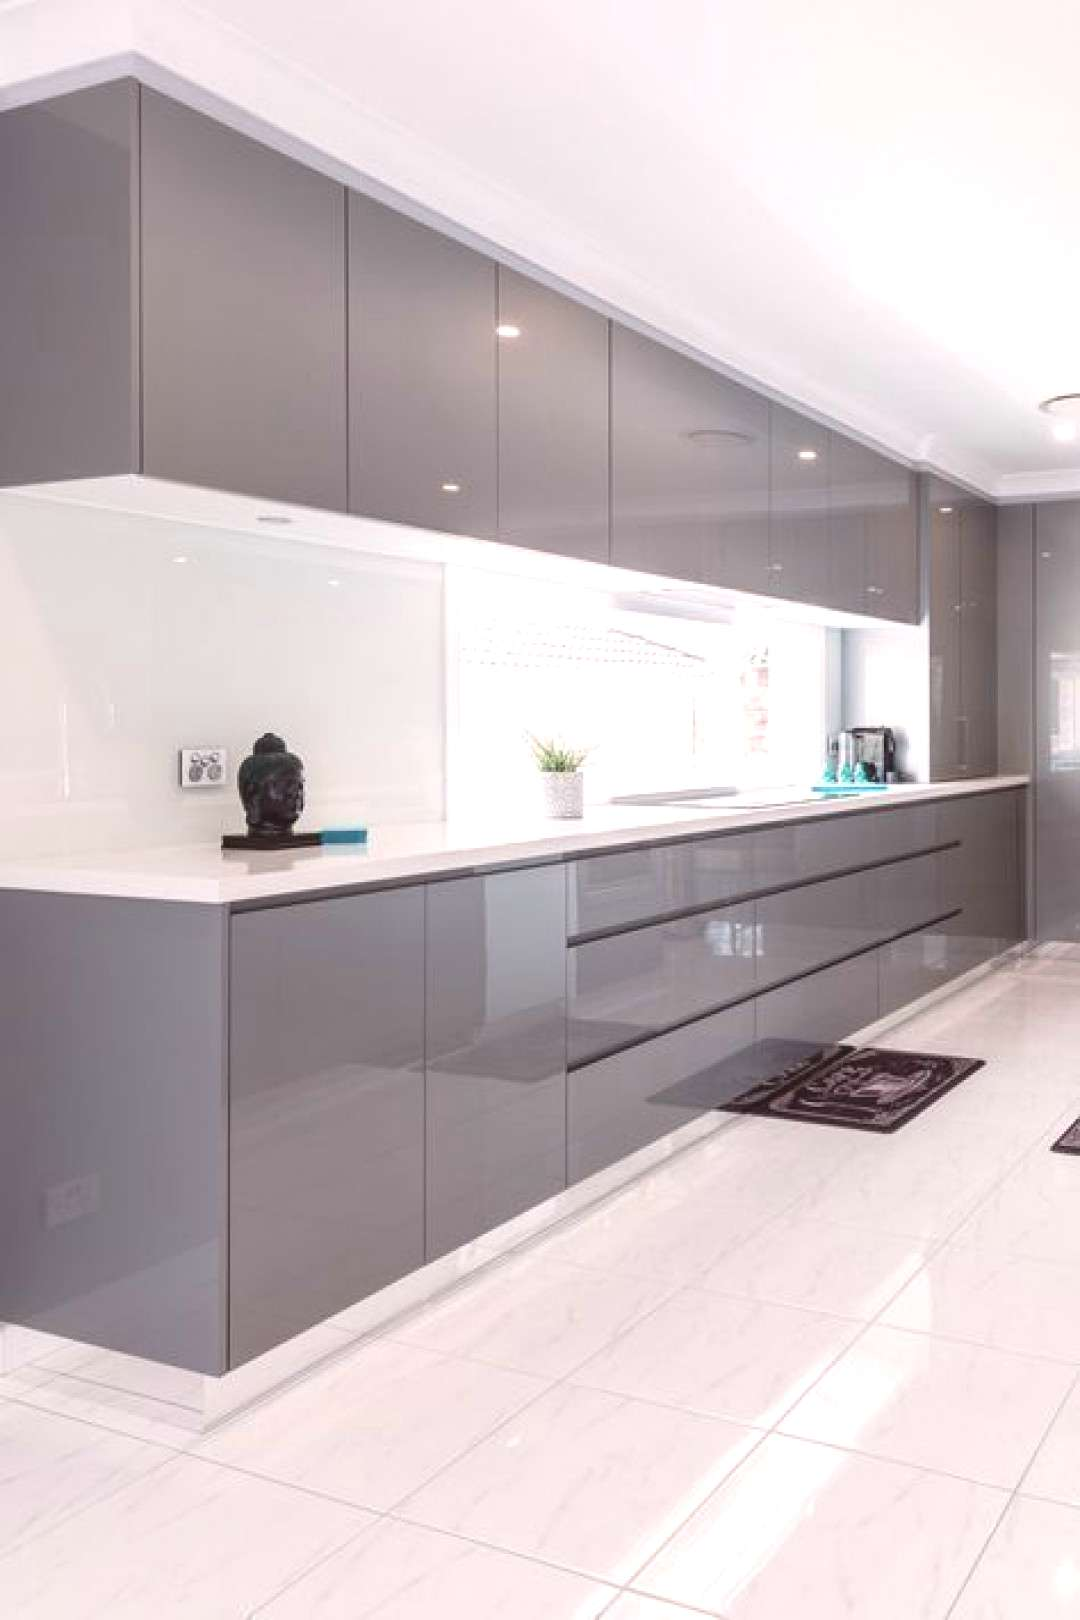 The contemporary kitchen borrows tall functionality and streamlined surfaces from the modernist des